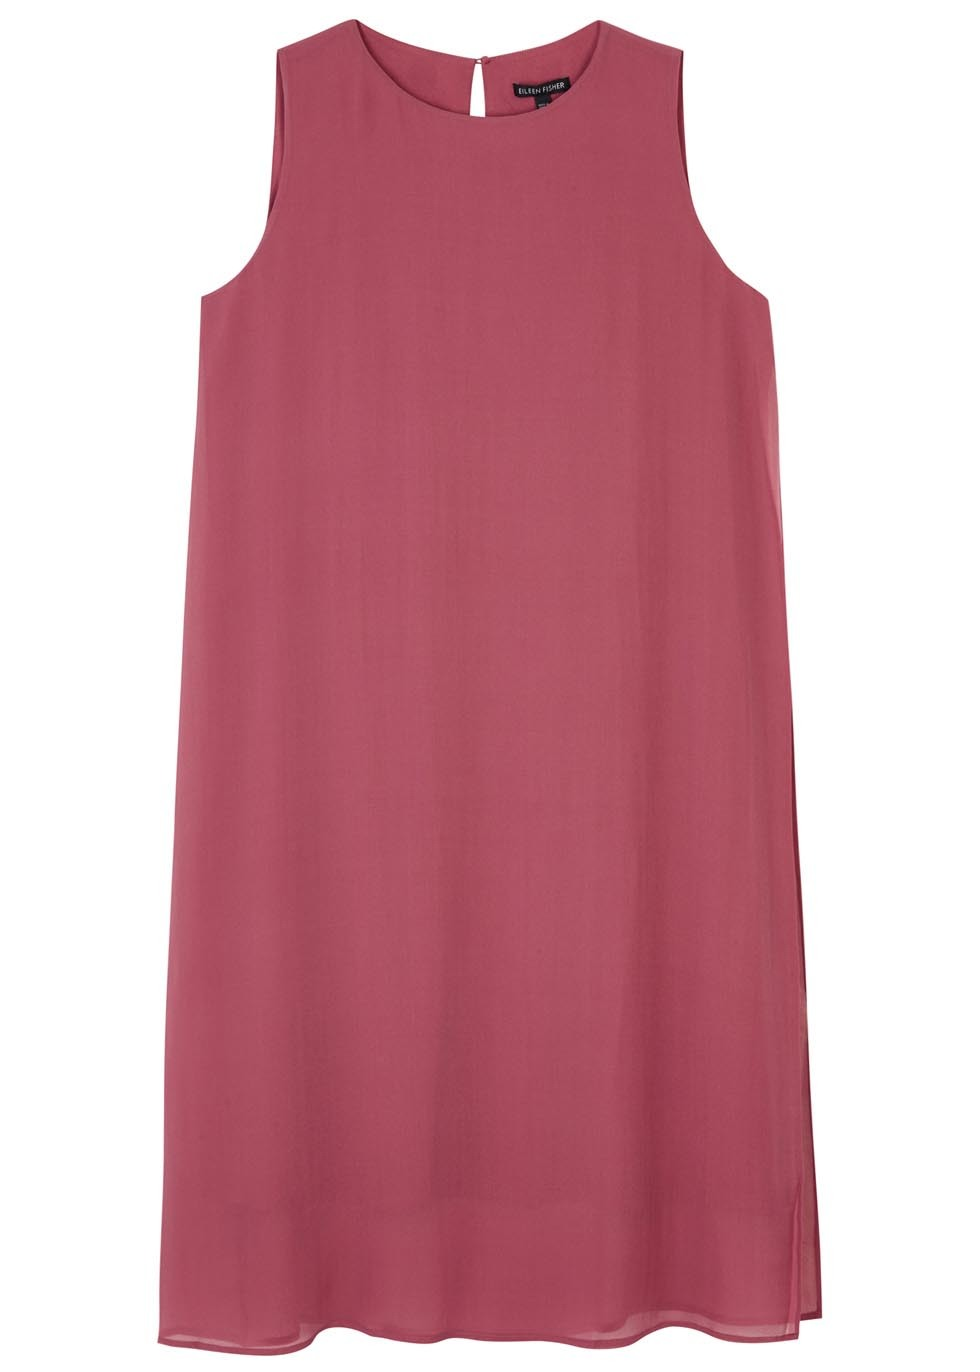 Rose Layered Silk Jersey Dress - style: shift; pattern: plain; sleeve style: sleeveless; occasions: evening; length: just above the knee; fit: body skimming; fibres: silk - 100%; neckline: crew; sleeve length: sleeveless; pattern type: fabric; texture group: jersey - stretchy/drapey; predominant colour: dusky pink; season: s/s 2016; wardrobe: event